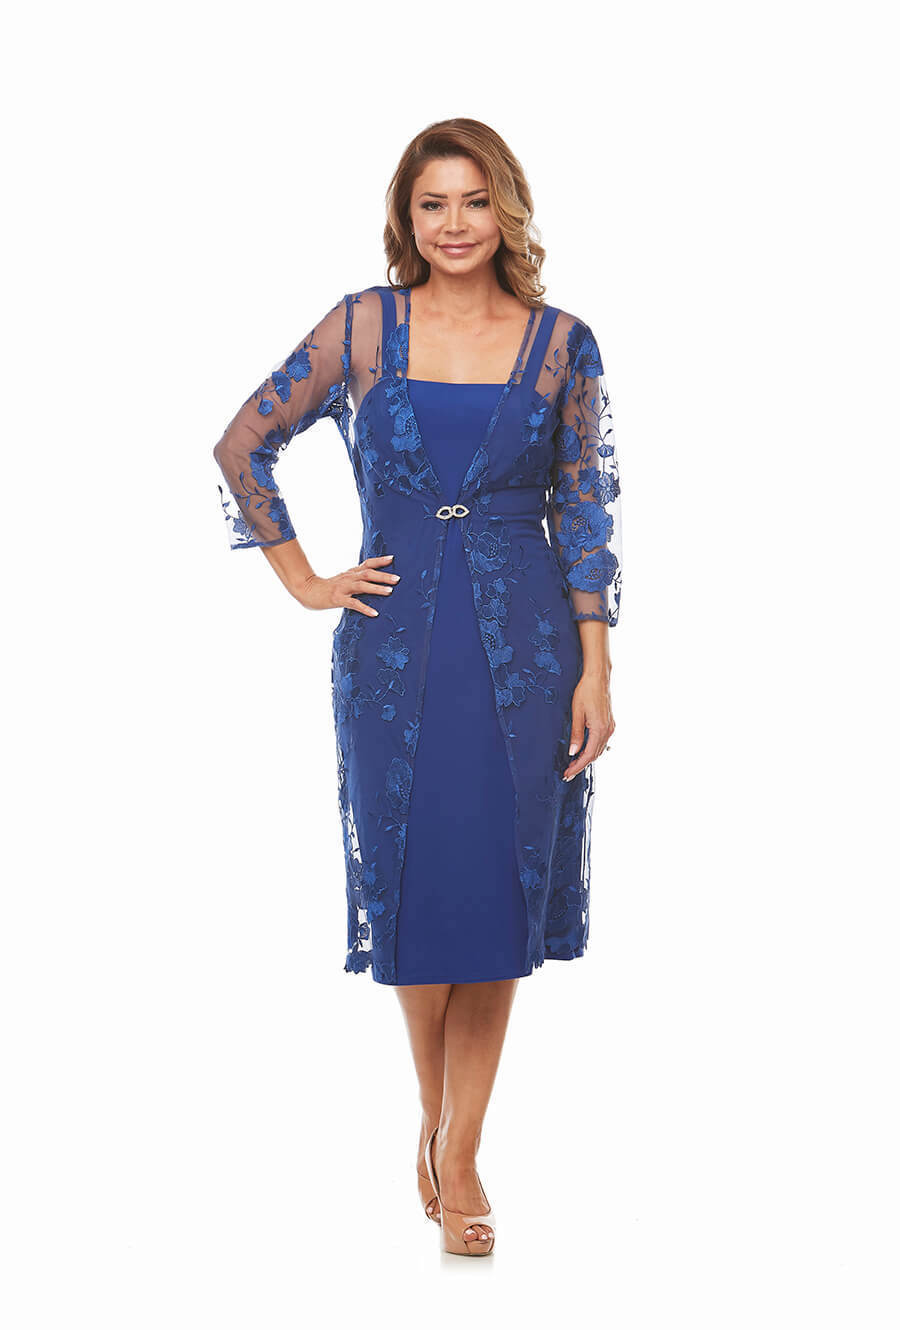 2 Piece Dress and Lace Jacket with 3/4 sleeves